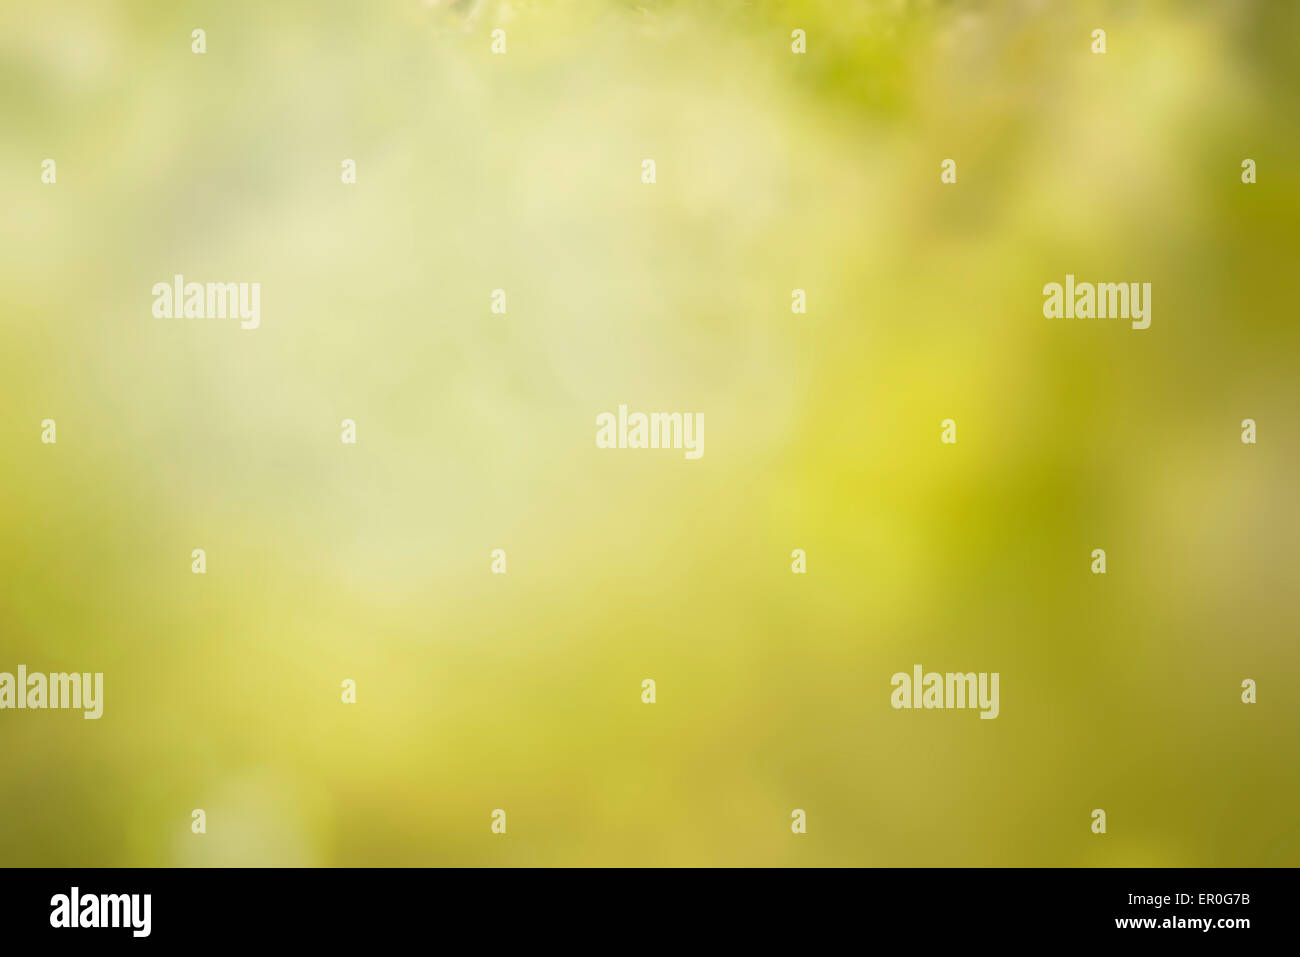 a blurred background inspired to nature - Stock Image